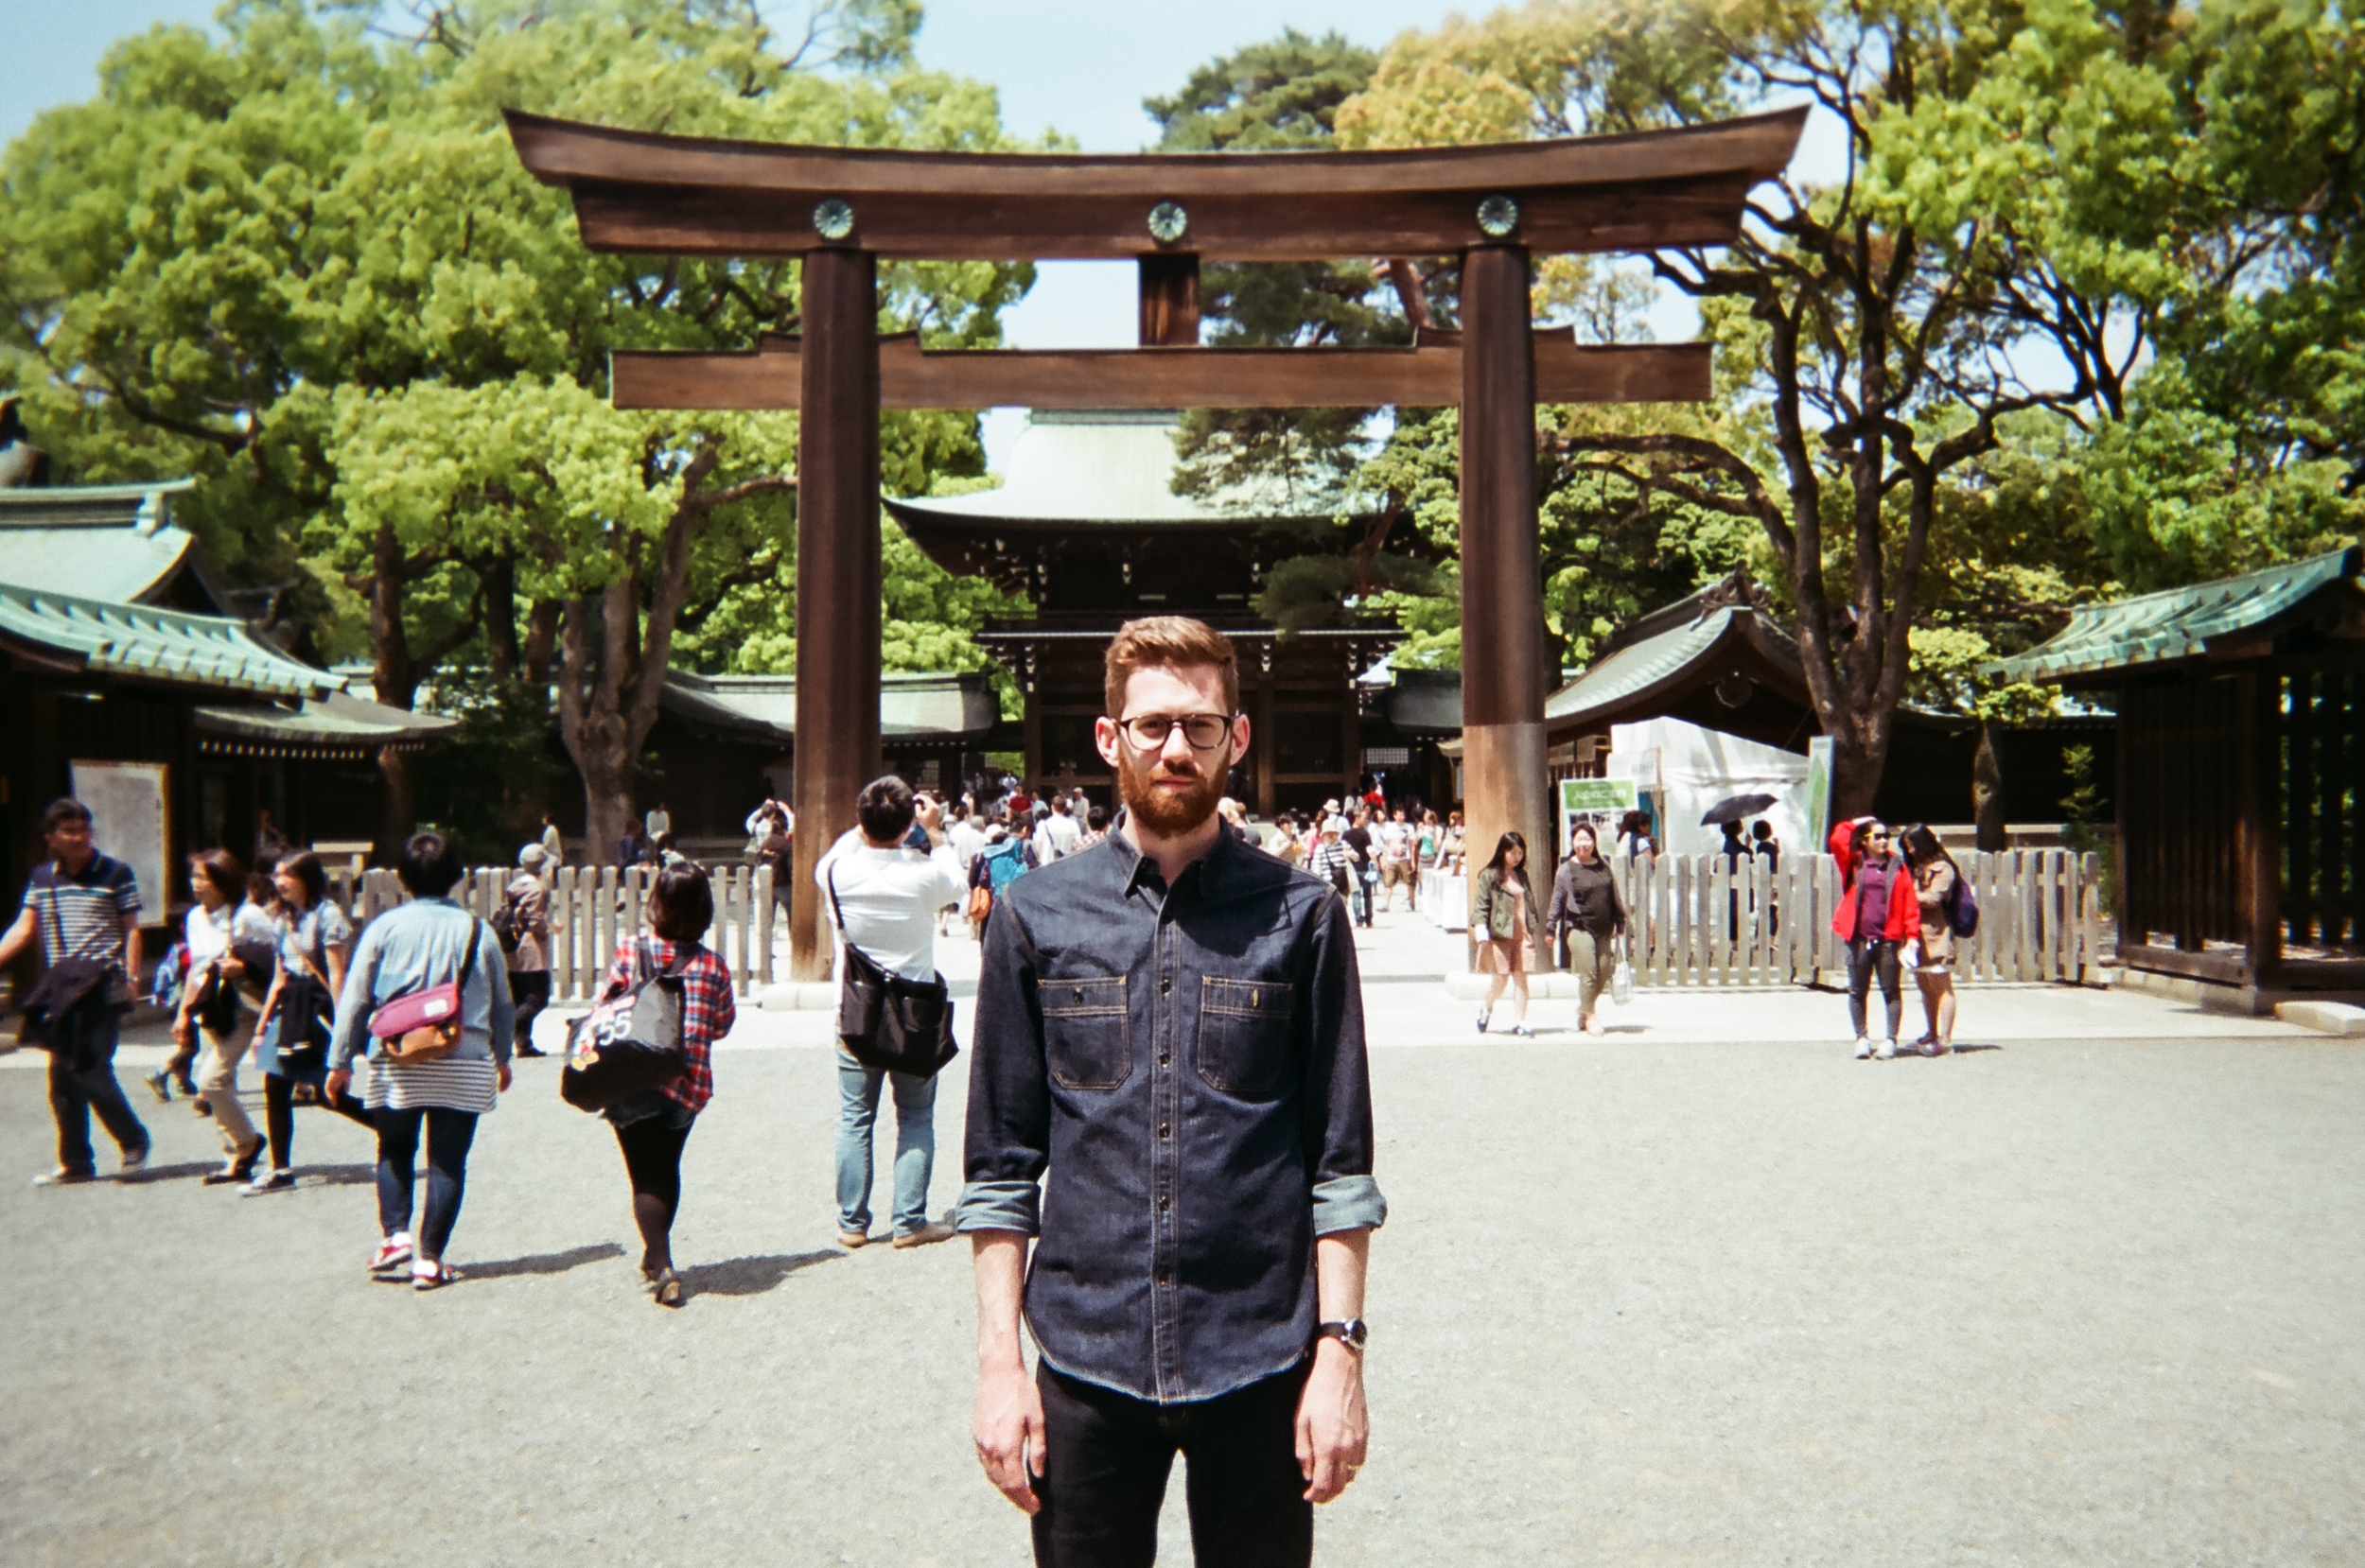 Tyler at the Meiji Jingu Temple